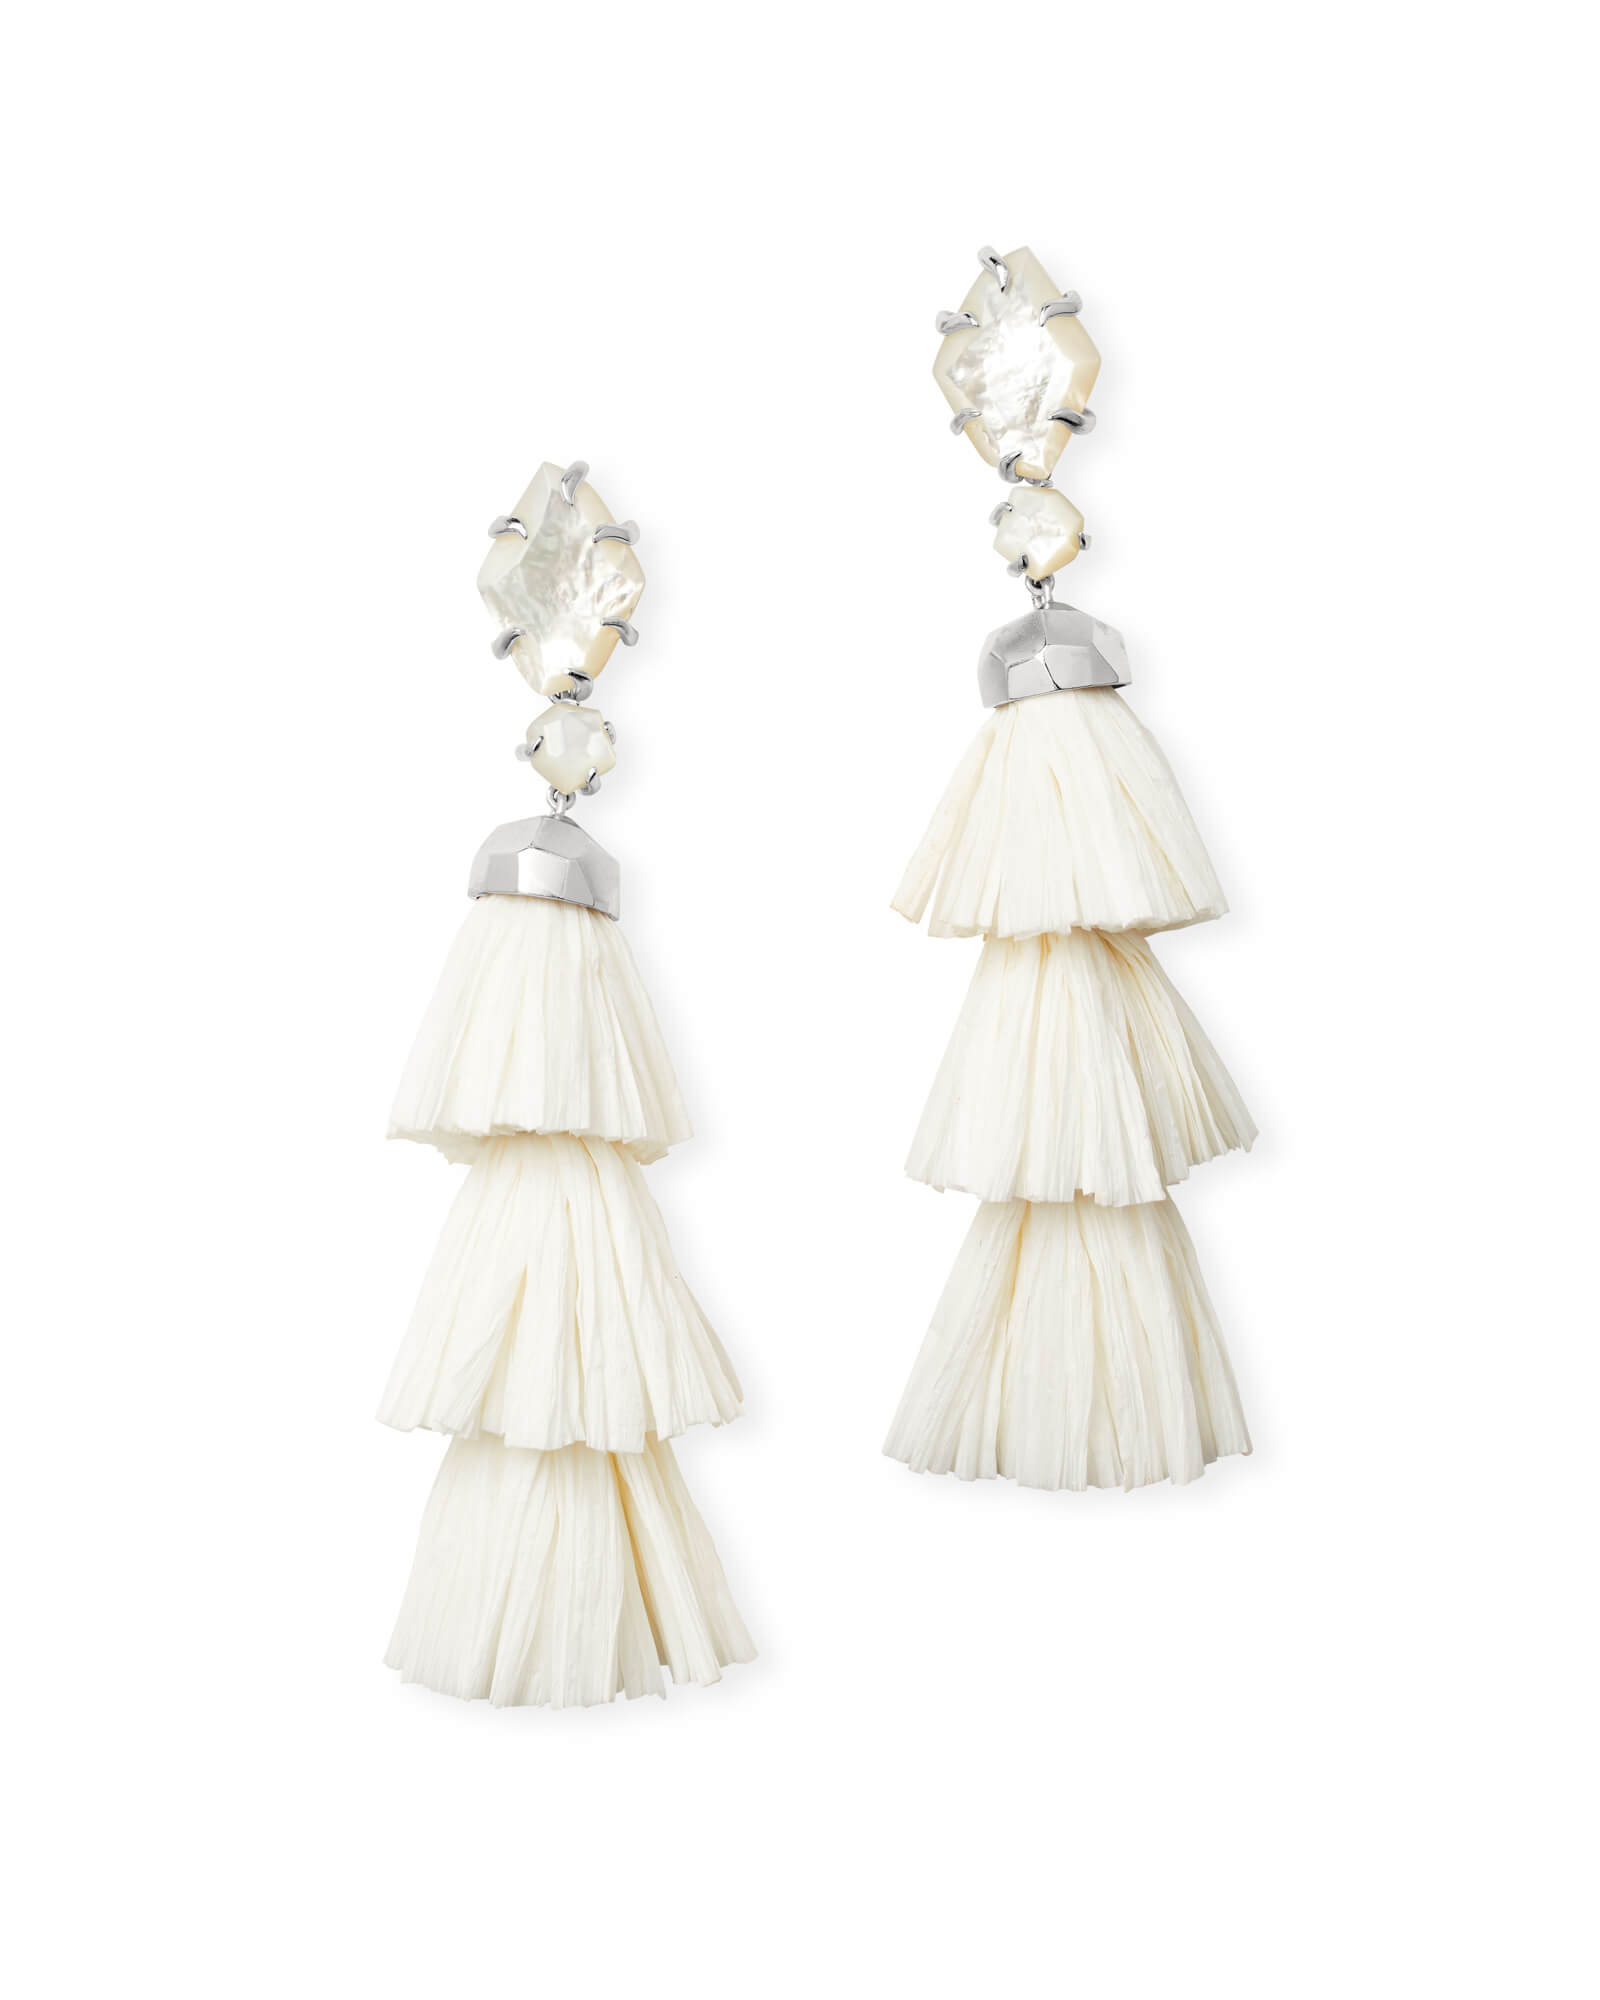 Denise Silver Statement Earrings Ivory Mother of Pearl